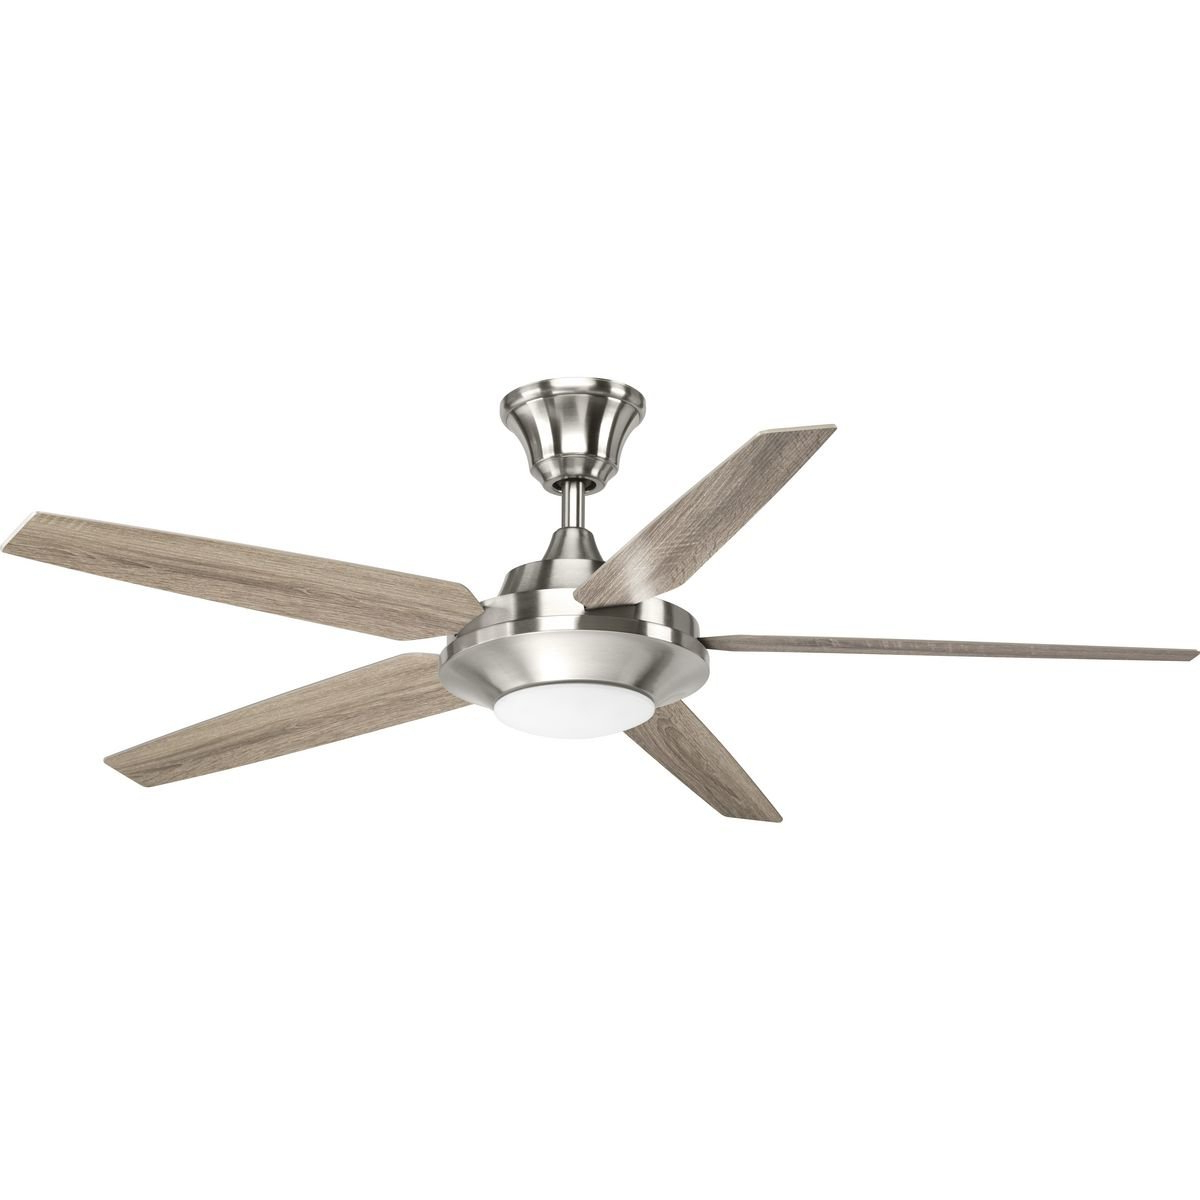 "Red Barrel Studio 54"" Searles 5 Blade Led Ceiling Fan With Remote, Light Kit Included Throughout Well Known Valerian 5 Blade Ceiling Fans (Gallery 20 of 20)"